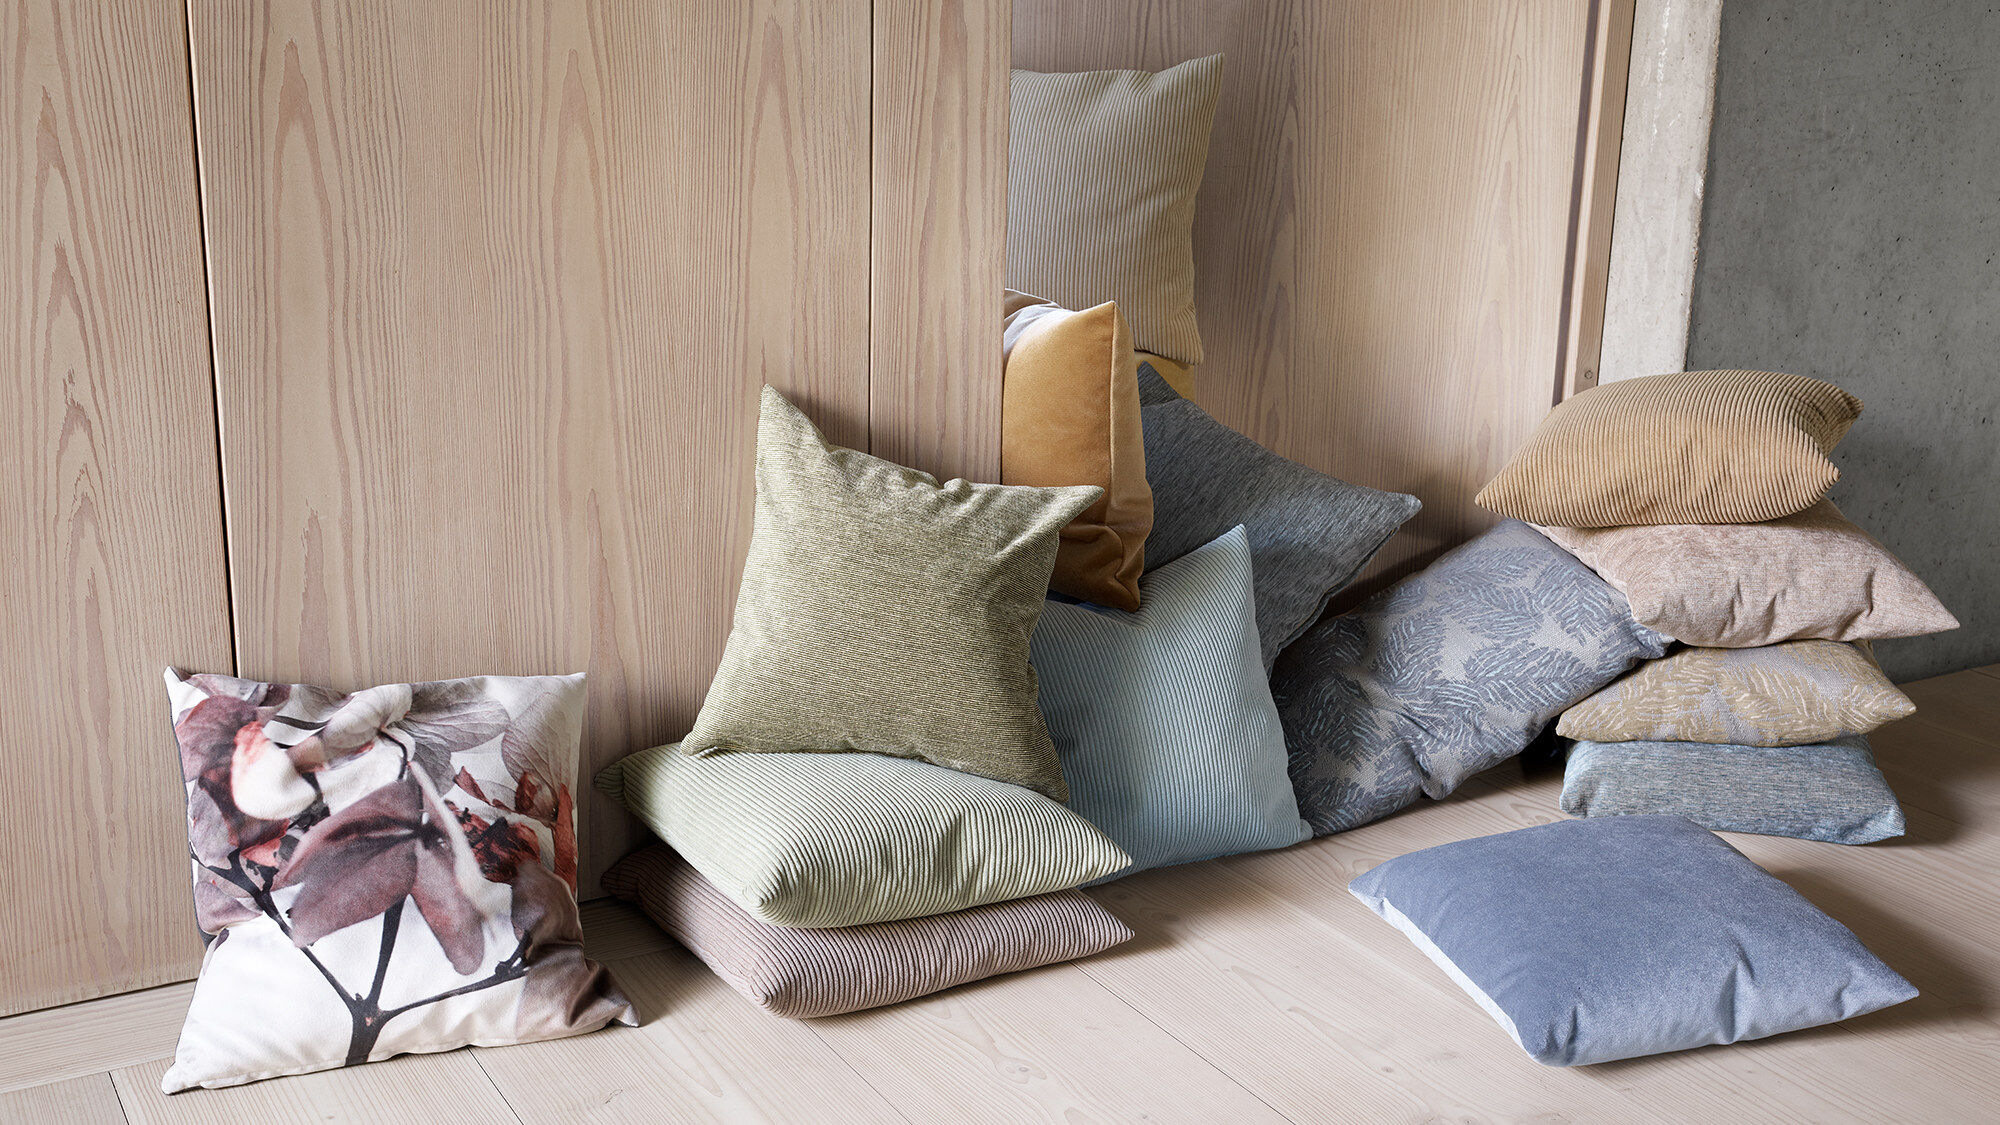 Cushions - REMS cushion